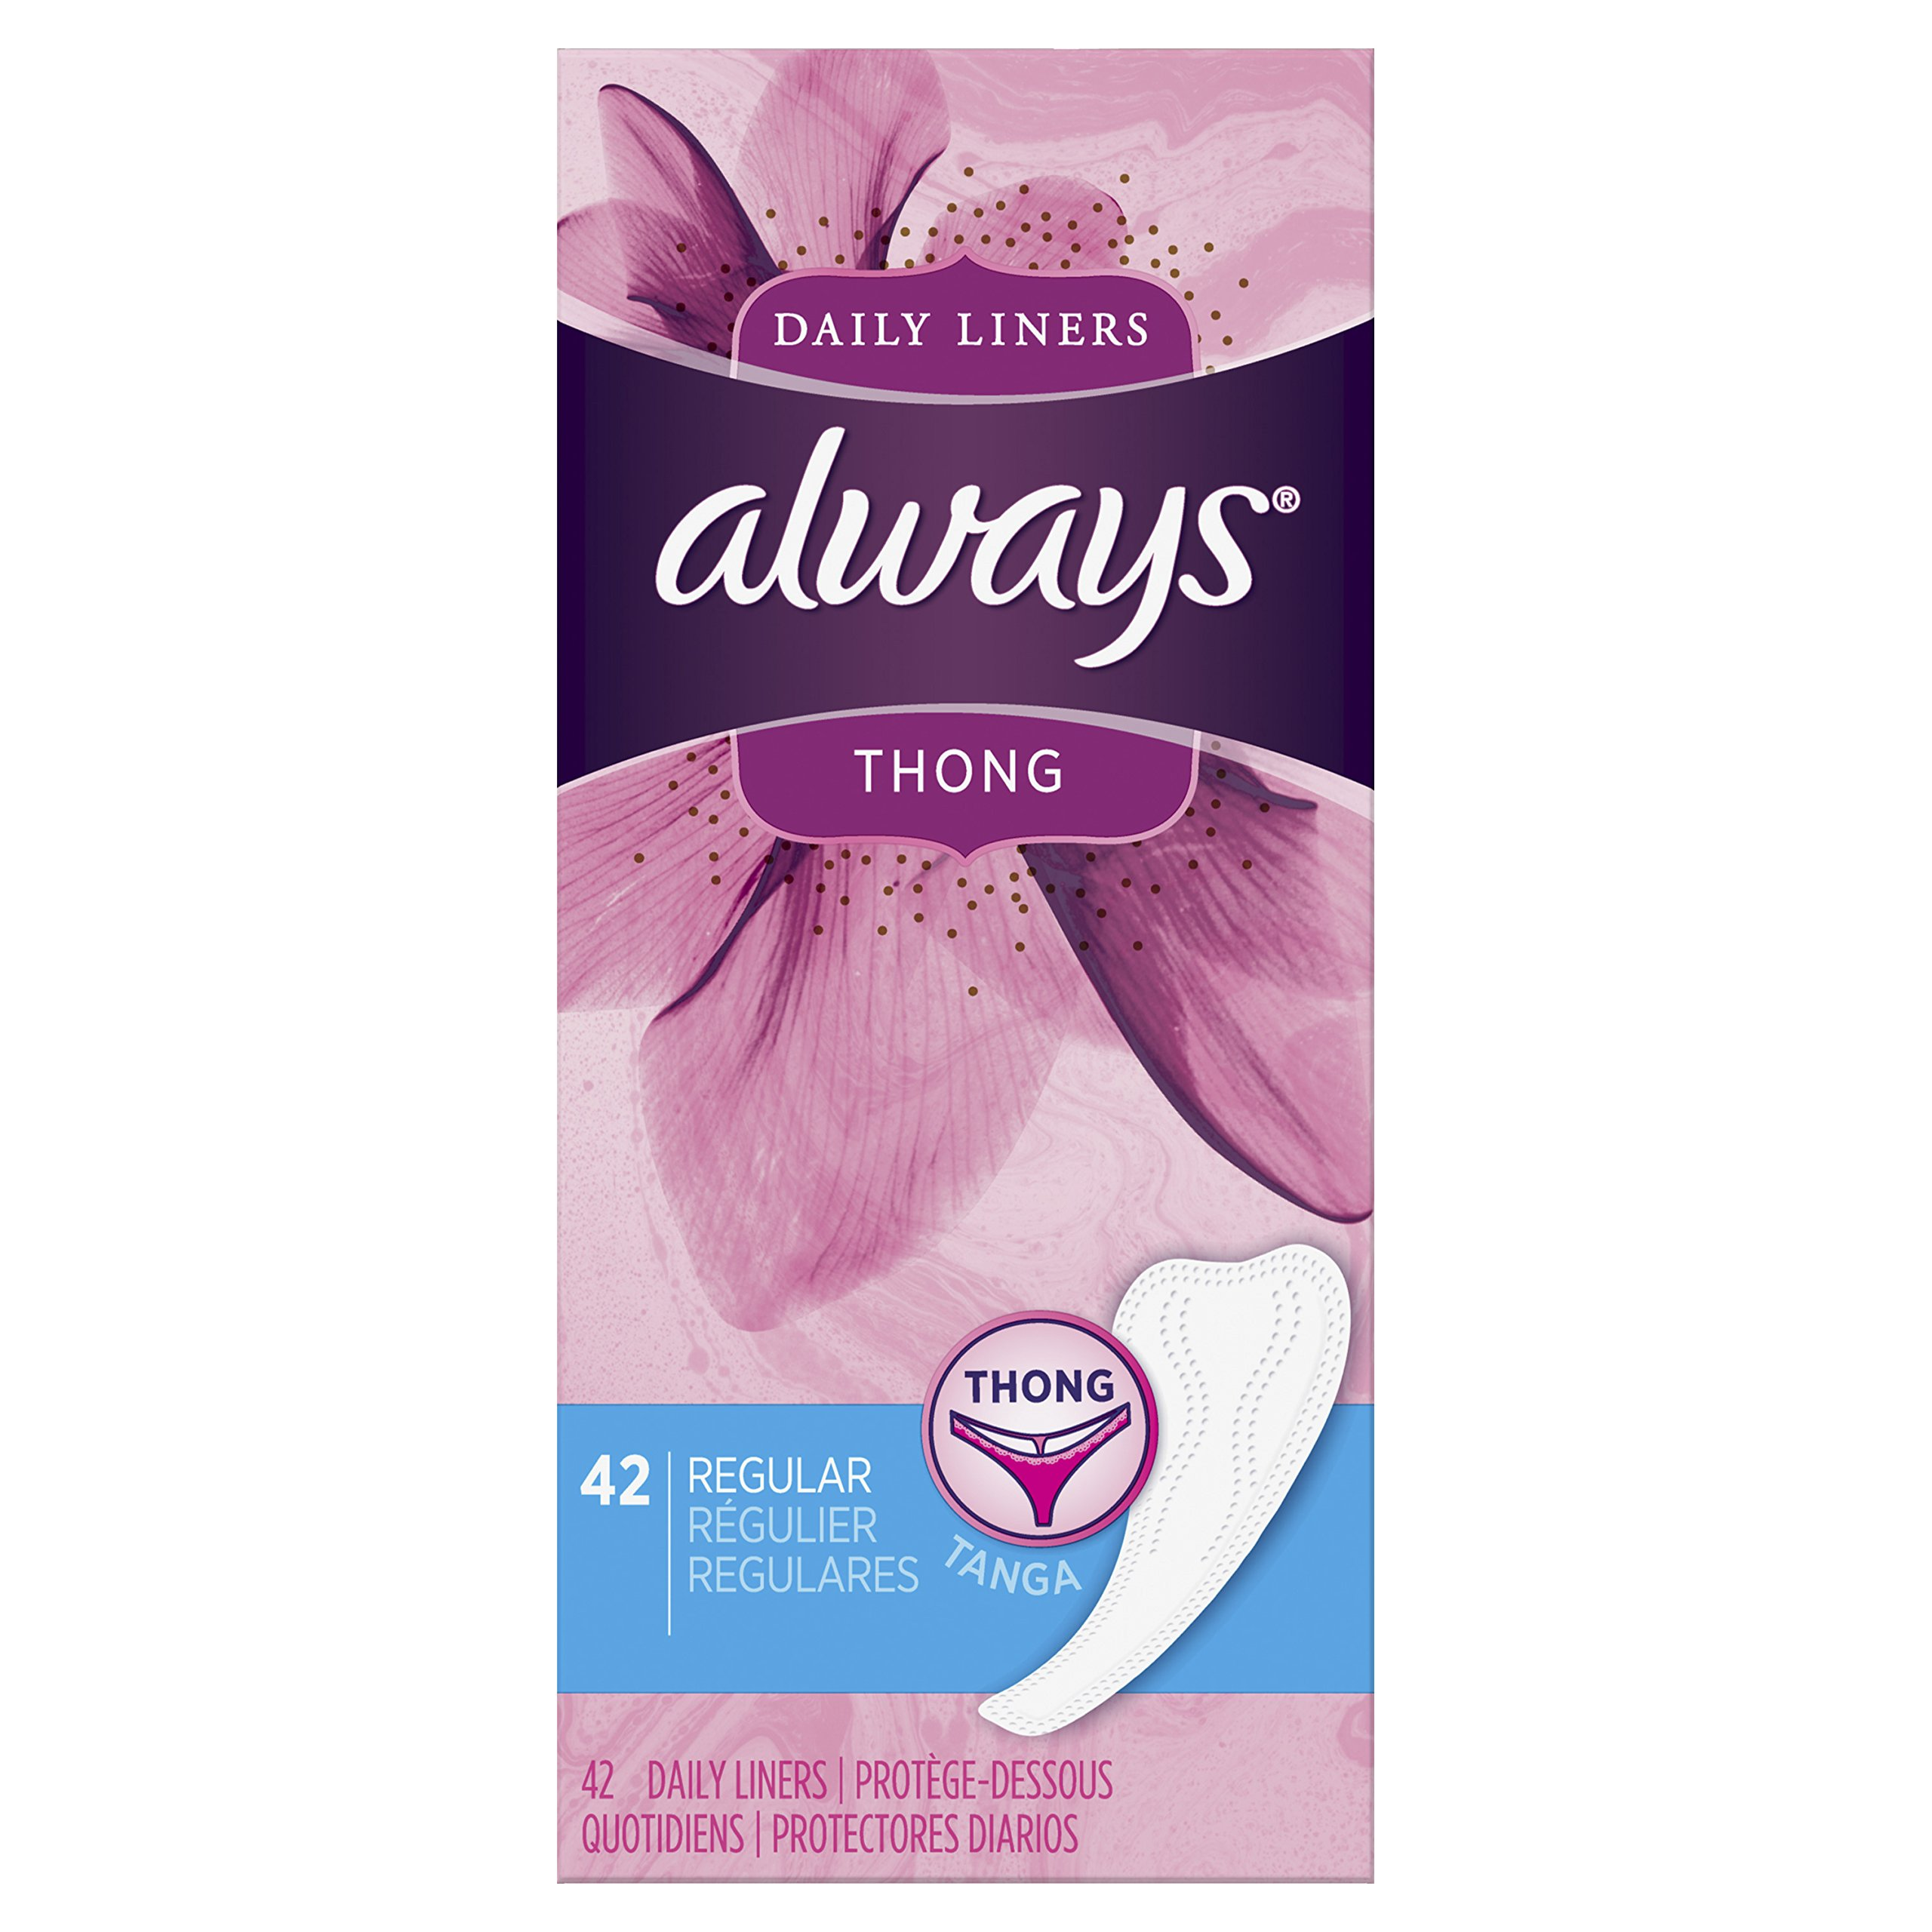 Always Dailies Thong Panty Liners for Women, 42 Count - Pack of 8 (336 Count Total)